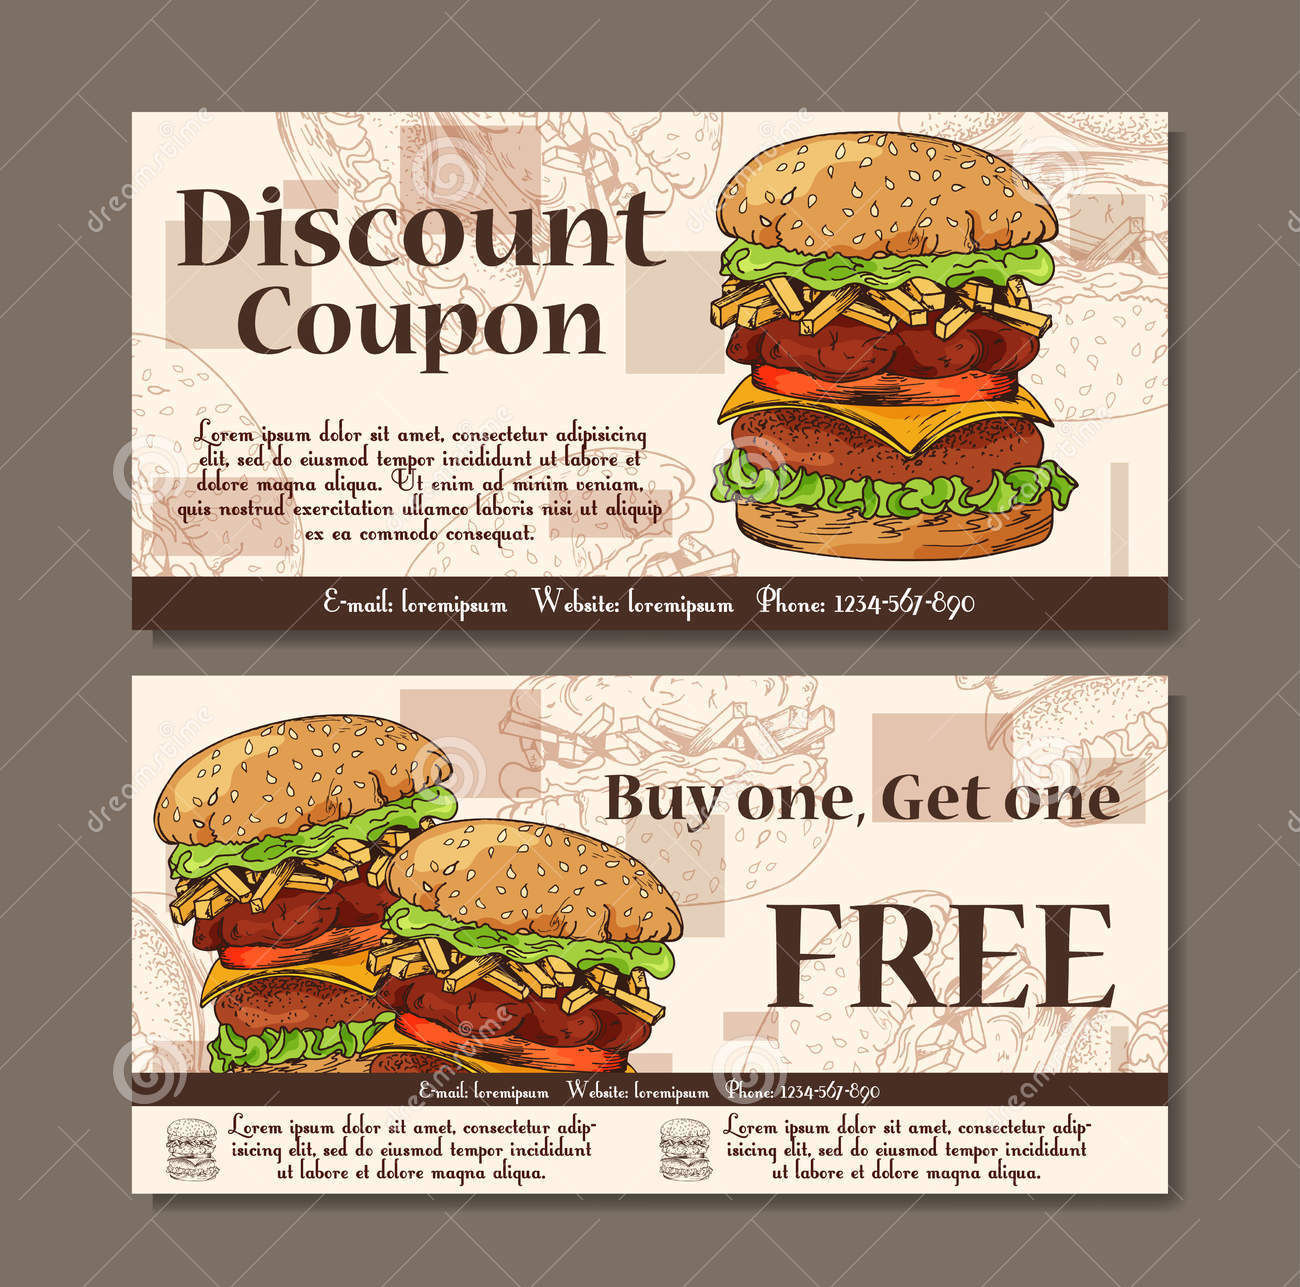 Whether you're stocking up on canned, boxed or baking groceries, or just picking up a few of your favorite snacks, these food coupons will get you great deals on all of the most popular brands. Related to Food .